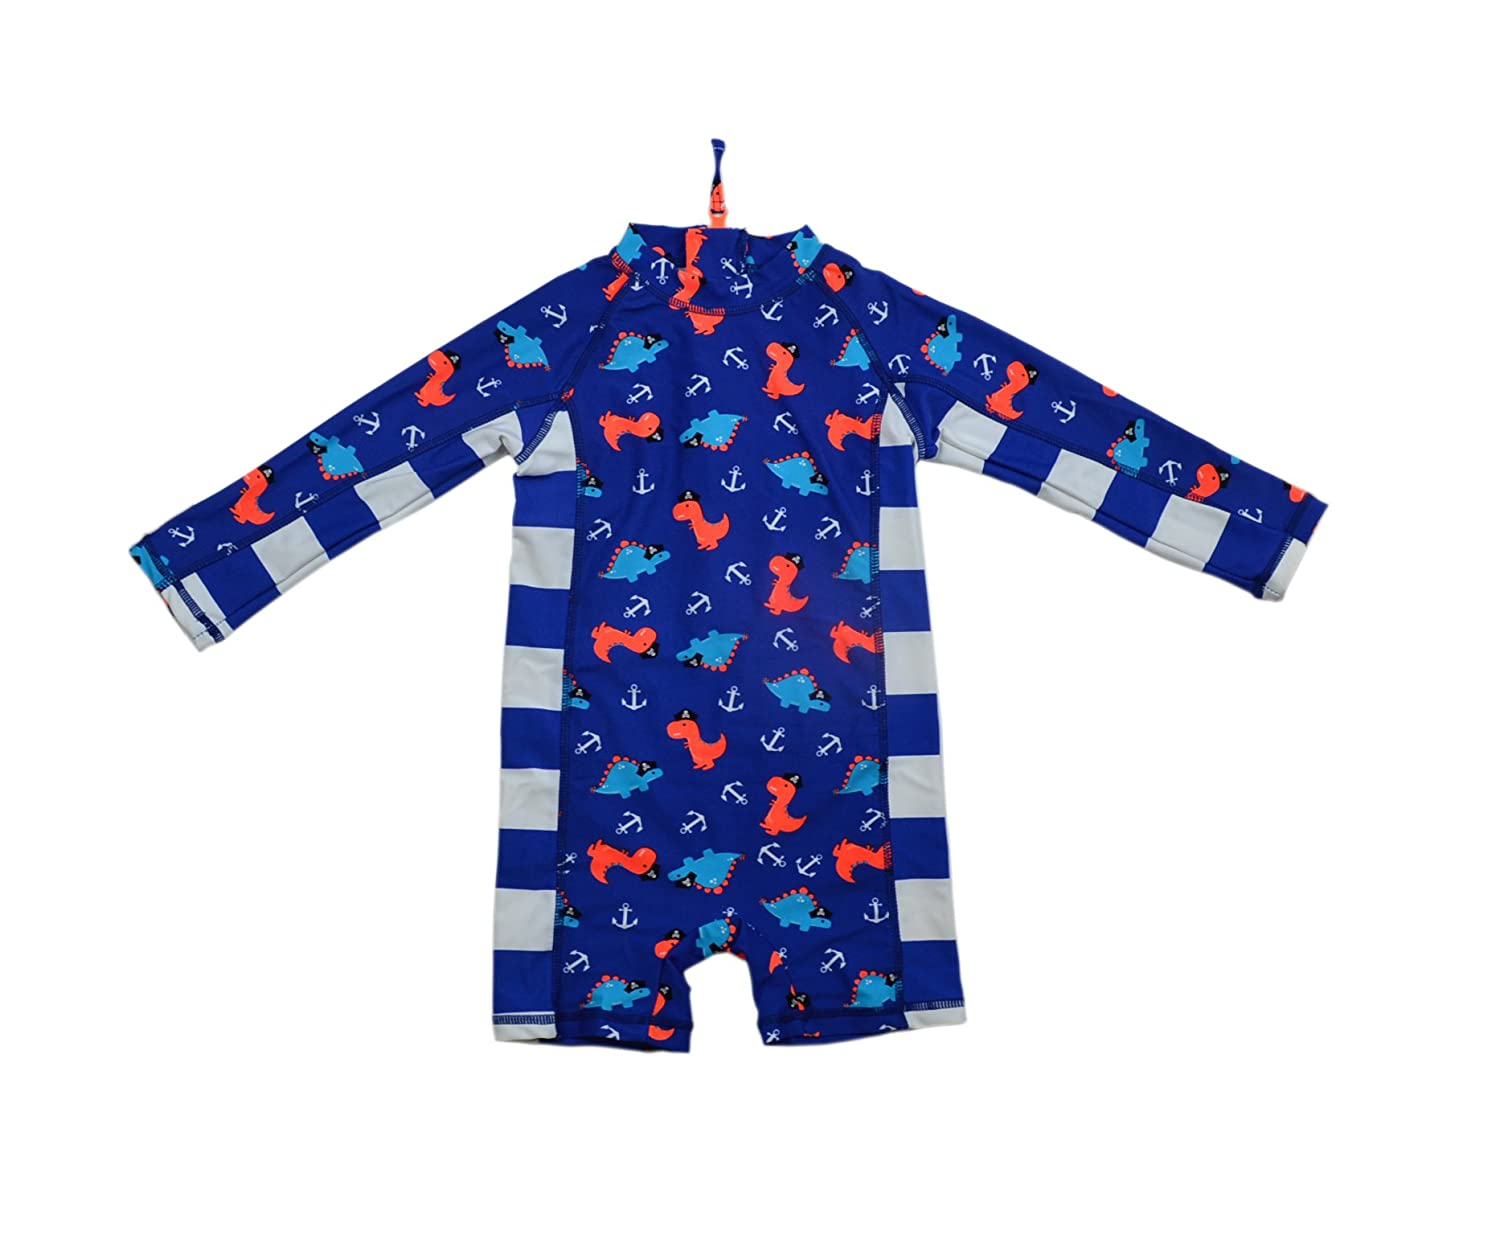 SUNOUTLET Kids Boy's UPF 50+ Sun Protection L/S One Piece Zip Sunsuit Free Sun Hat HX Sunsuit